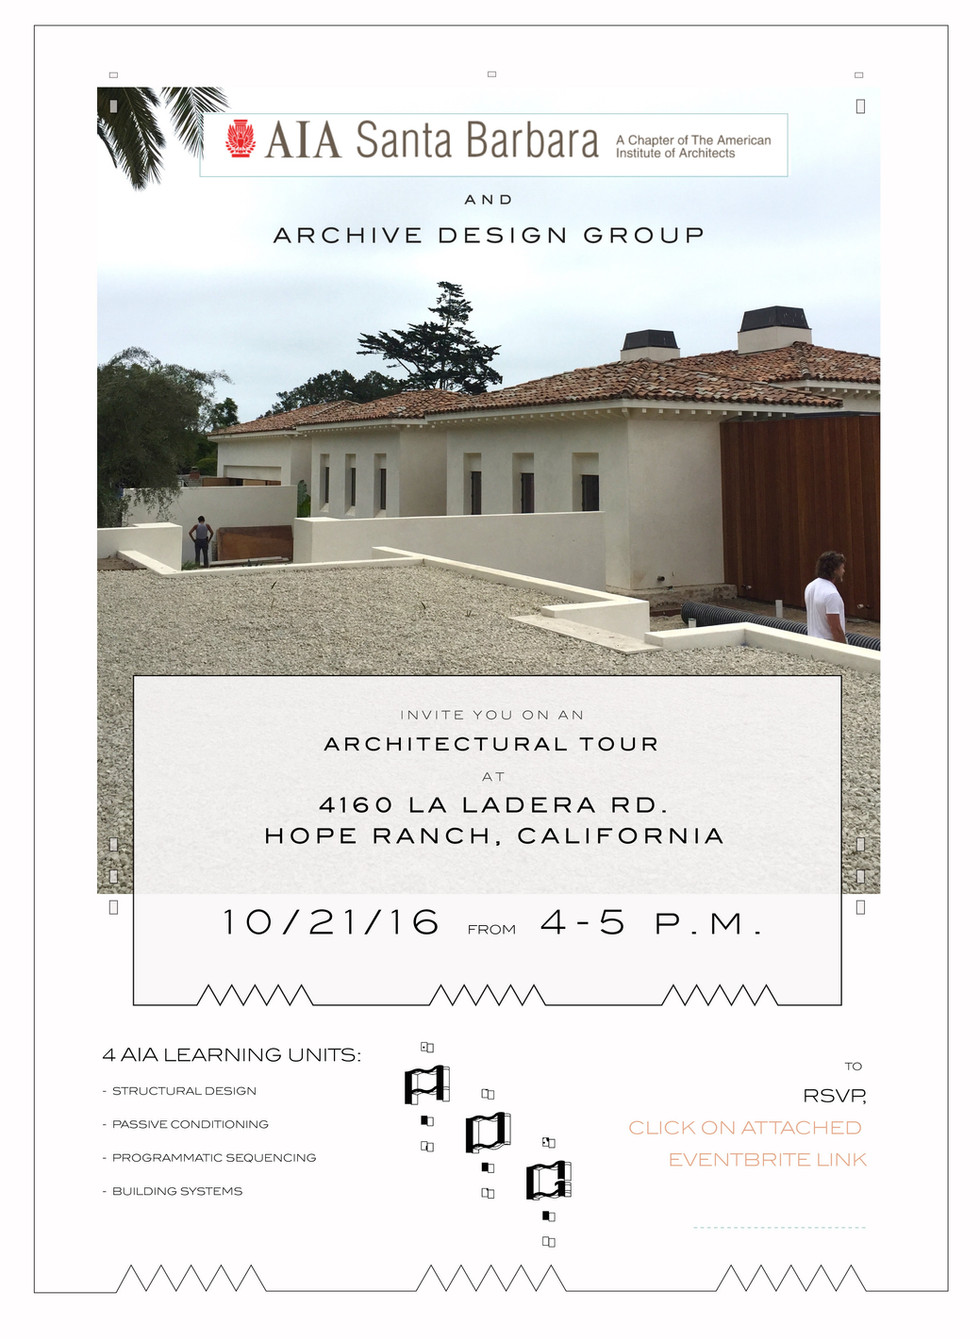 AIA Santa Barbara - Tour of La Ladera Residence 12-10-16